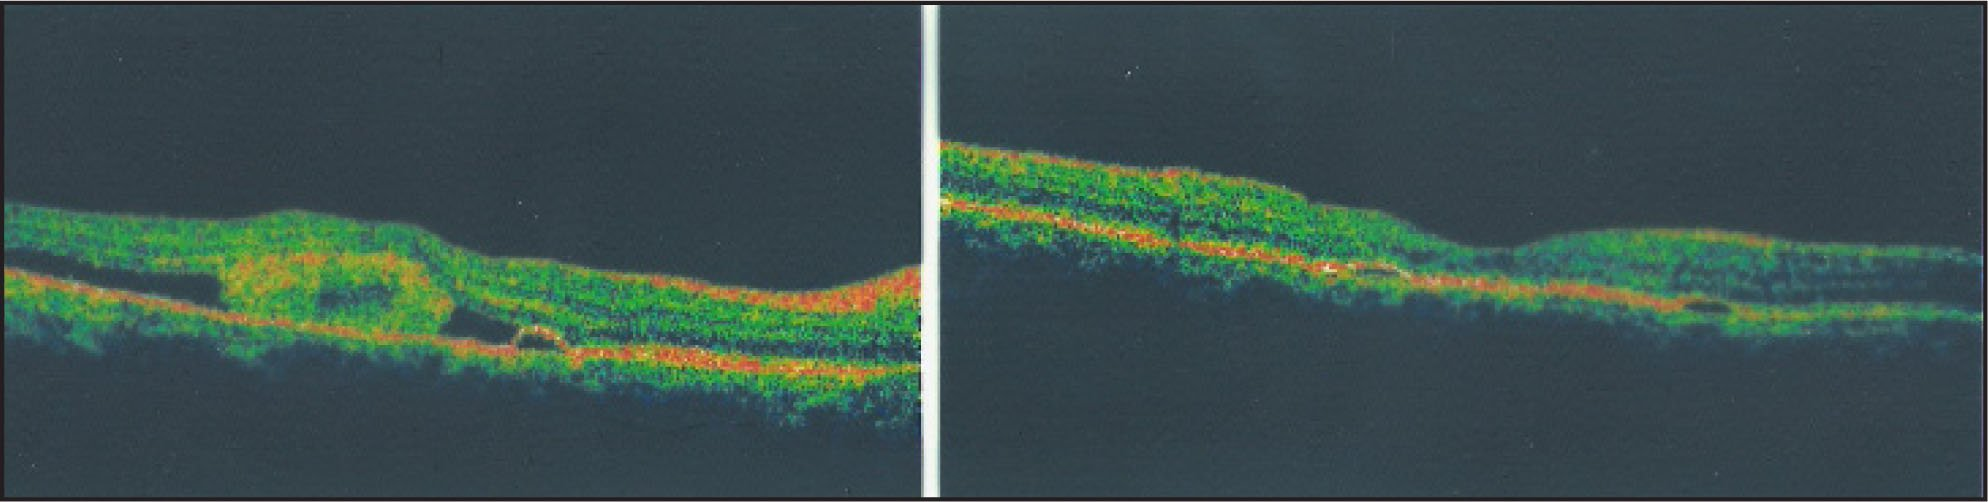 Left (pretreatment): The Optical Coherence Tomography Image Shows Loss of Foveal Contour, Presence of High Reflective Globular Mass (fibrinous Exudates), Subretinal Fluid, and a Tiny RPE Detachment. Right (posttreatment): The Optical Coherence Tomography Image Shows Restoration of Foveal Contour and Disappearance of Subretinal Exudates and Fluid and Somewhat Flattened Tiny Pigment Epithelial Detachment.